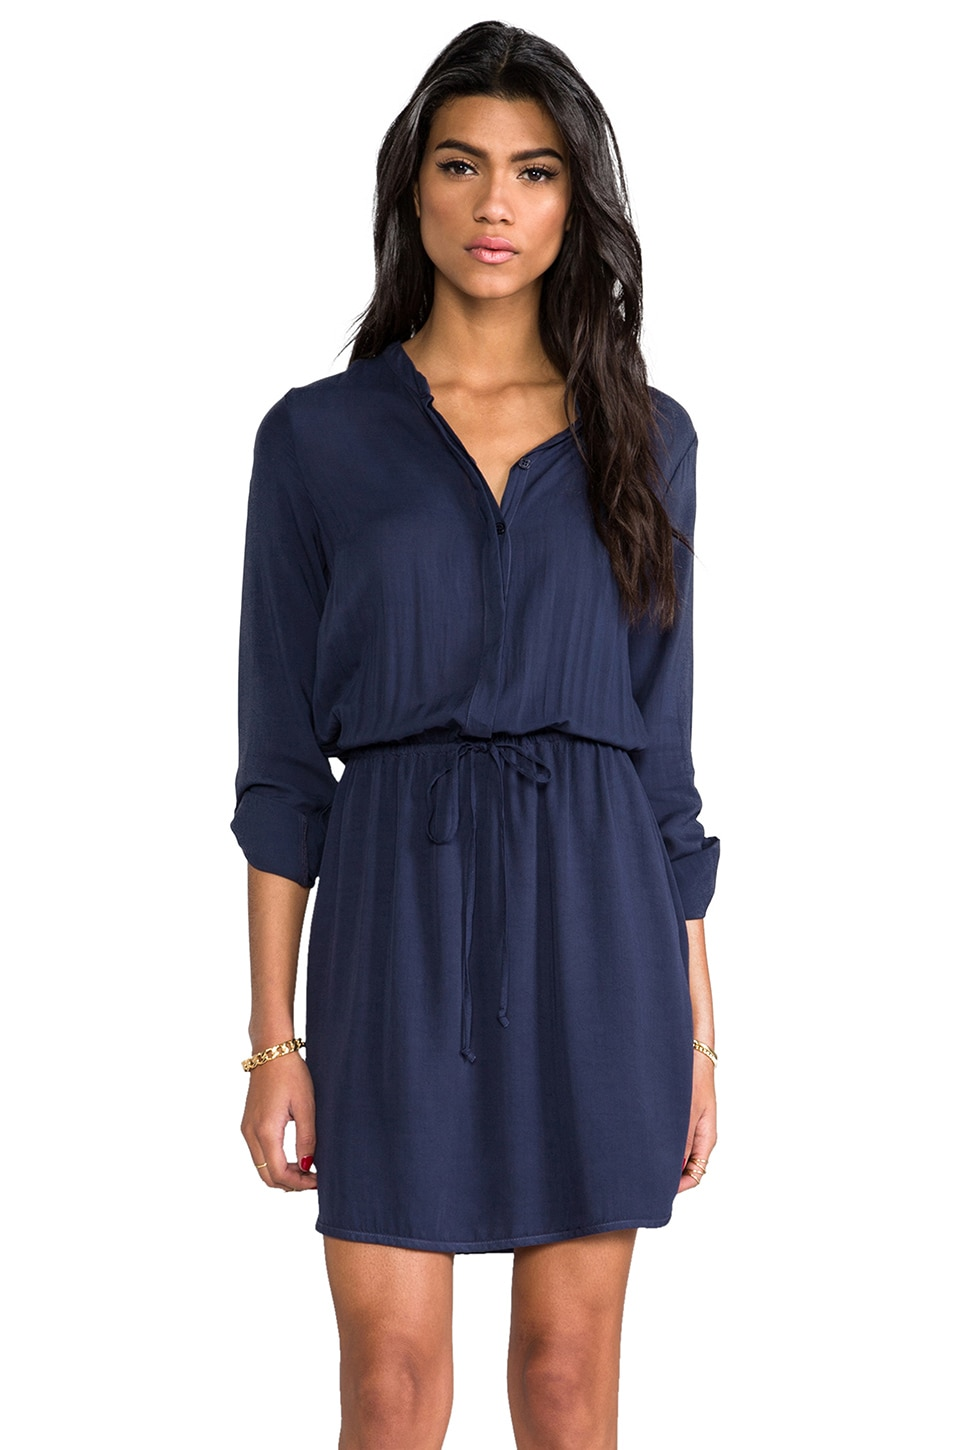 Splendid Draw String Dress in Navy